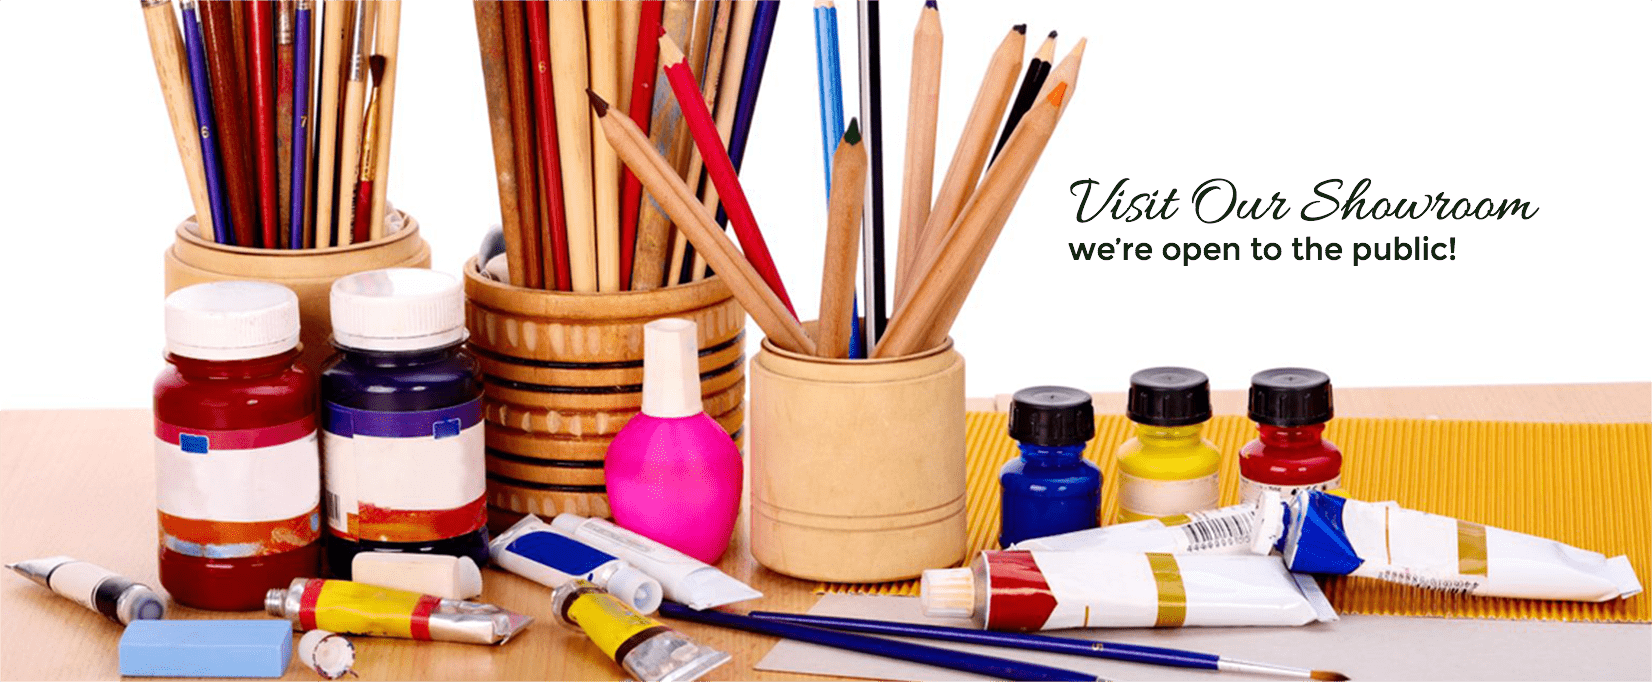 Jj crafts arts and crafts supplies selling arts crafts supplies publicscrutiny Image collections